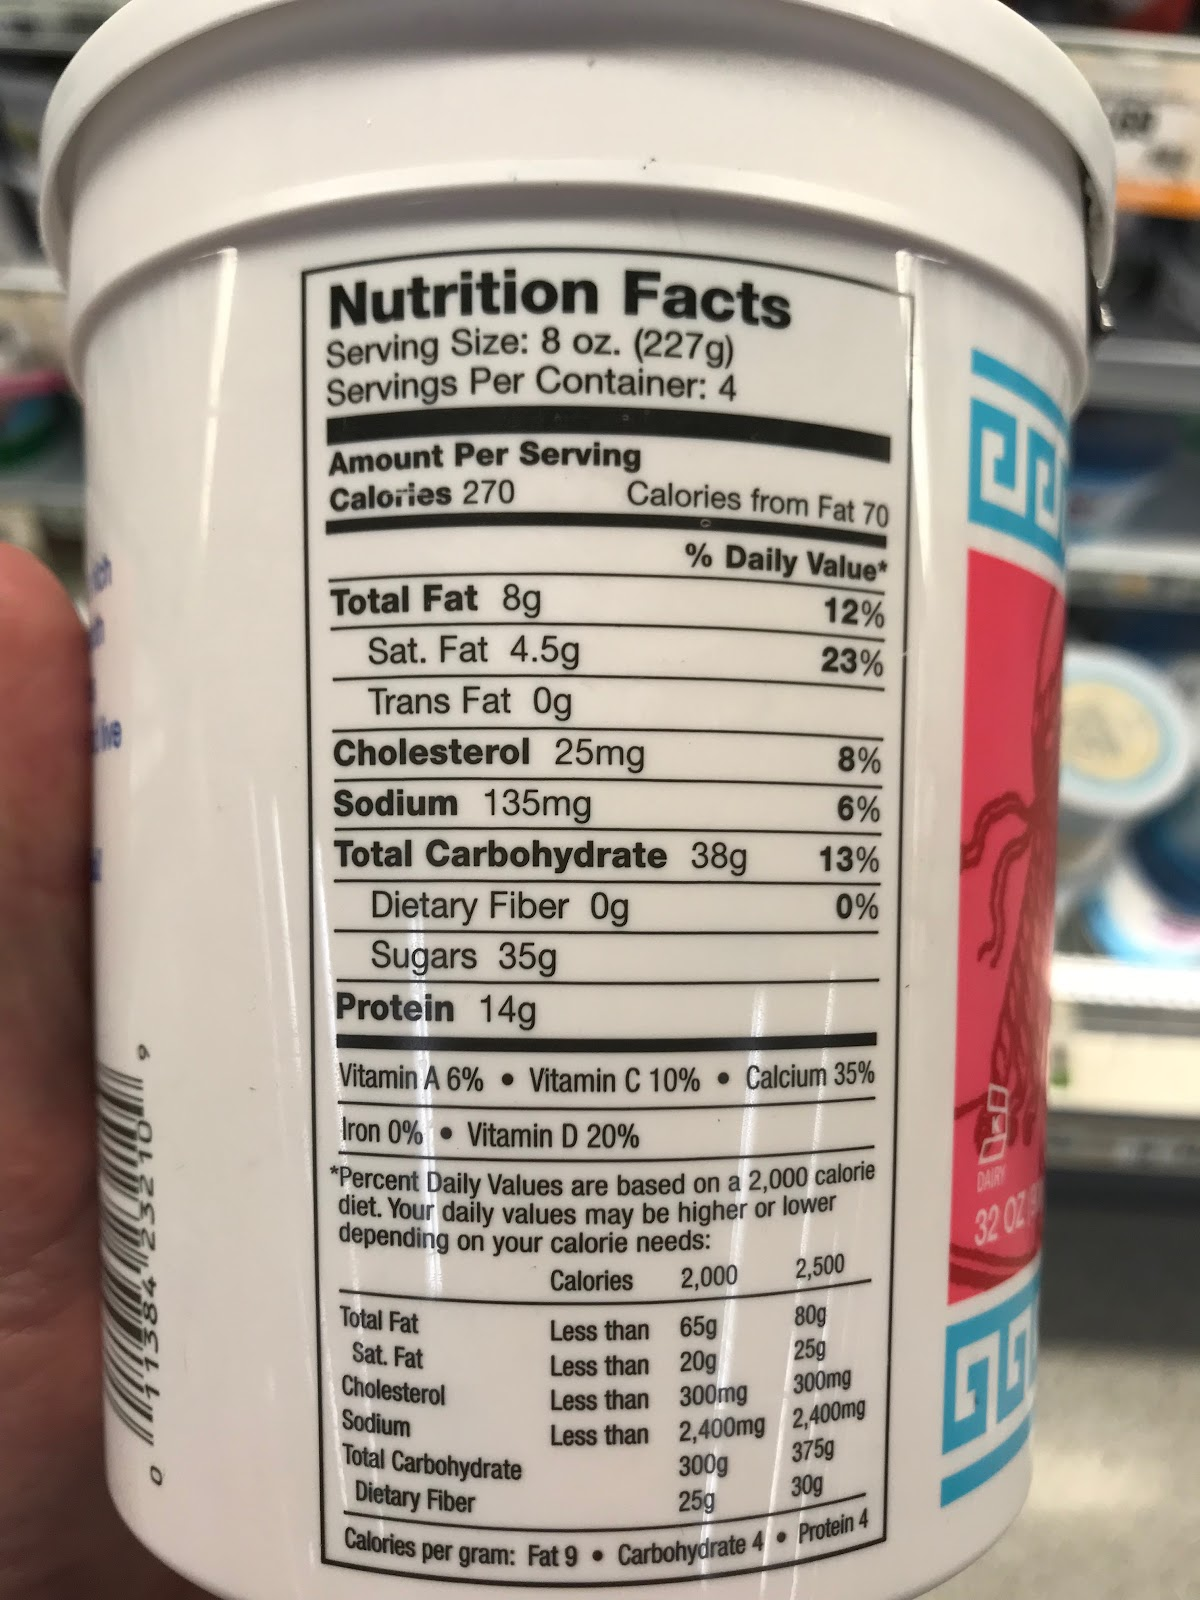 image showing Nutrition Facts for strawberry yogurt listing 35 grams of sugar